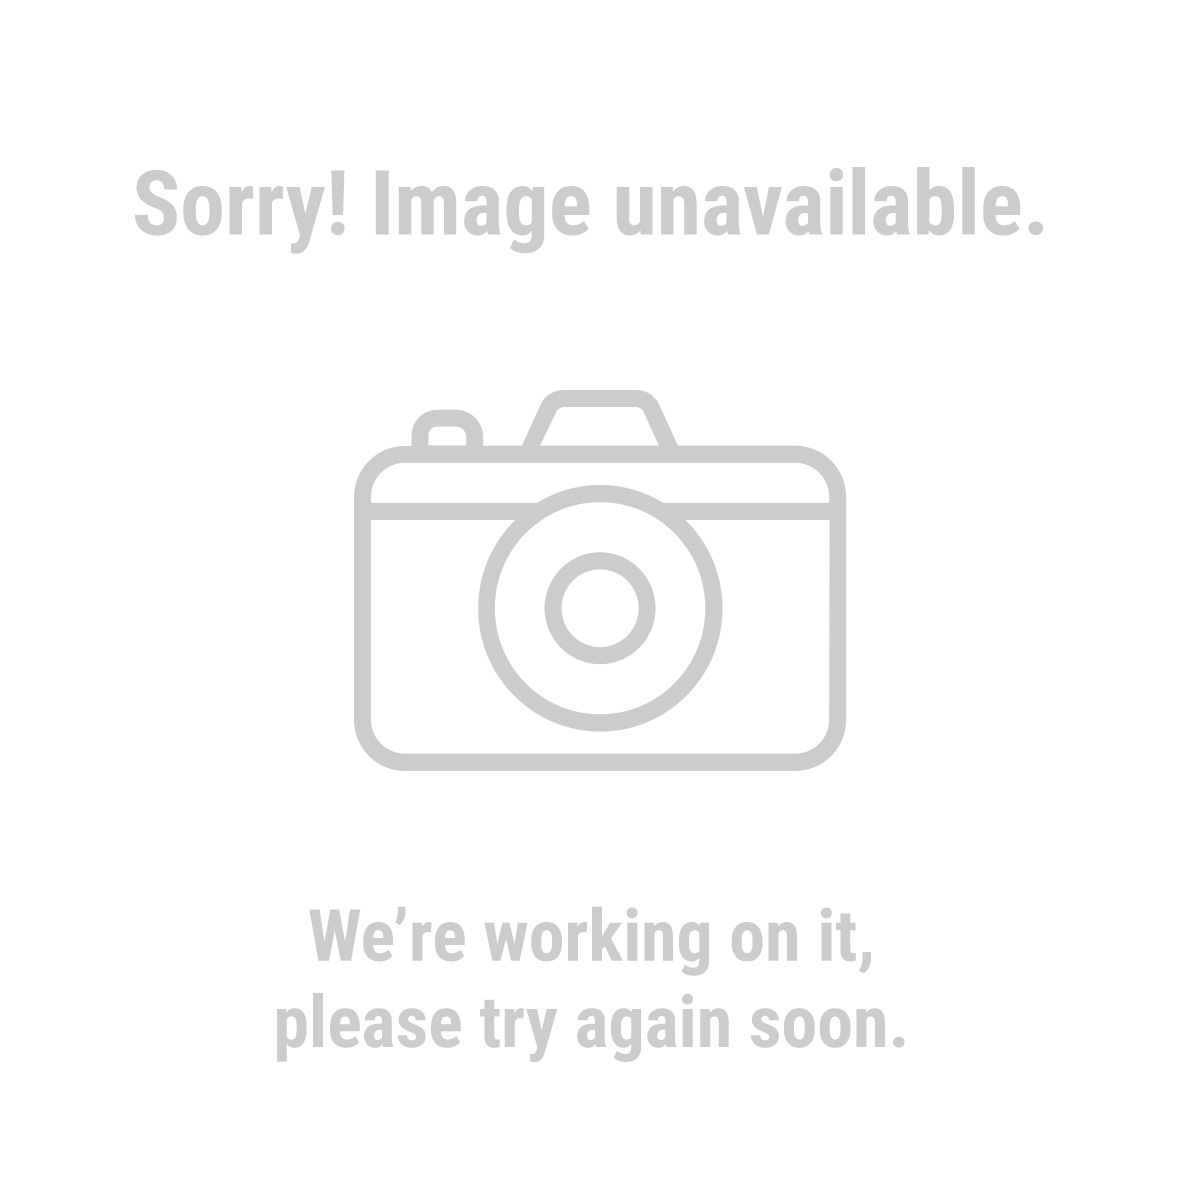 Central Pneumatic 62629 26 gal. 1.8 HP 150 PSI Oilless Air Compressor